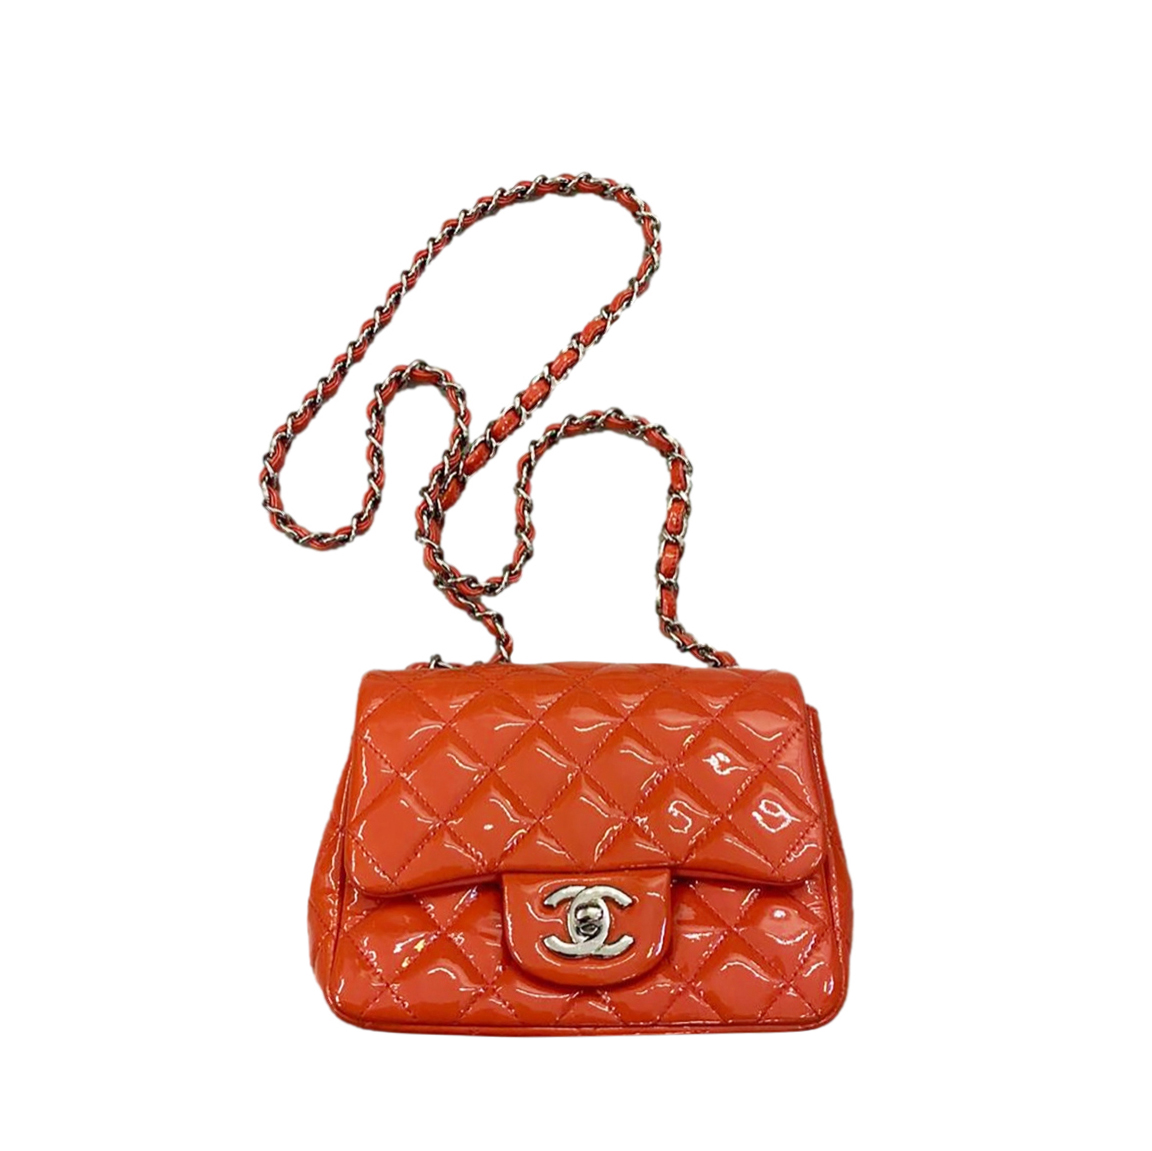 Chanel Timeless Patent Quilted Leather Coral Mini Flap Bag